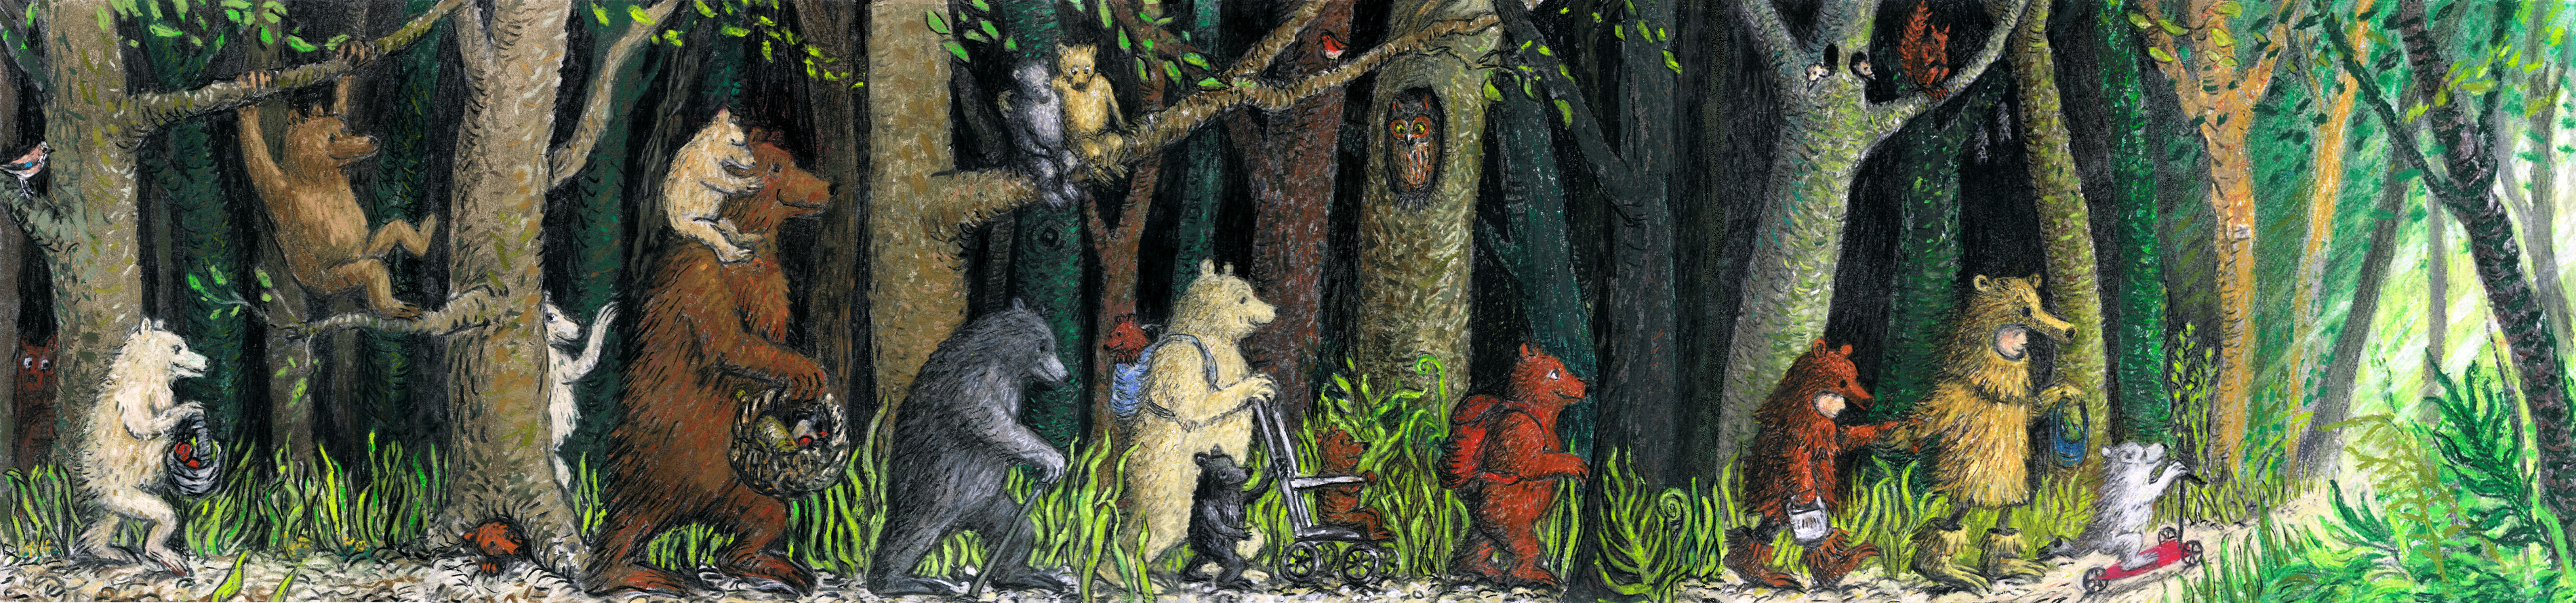 Long Bears in the Wood